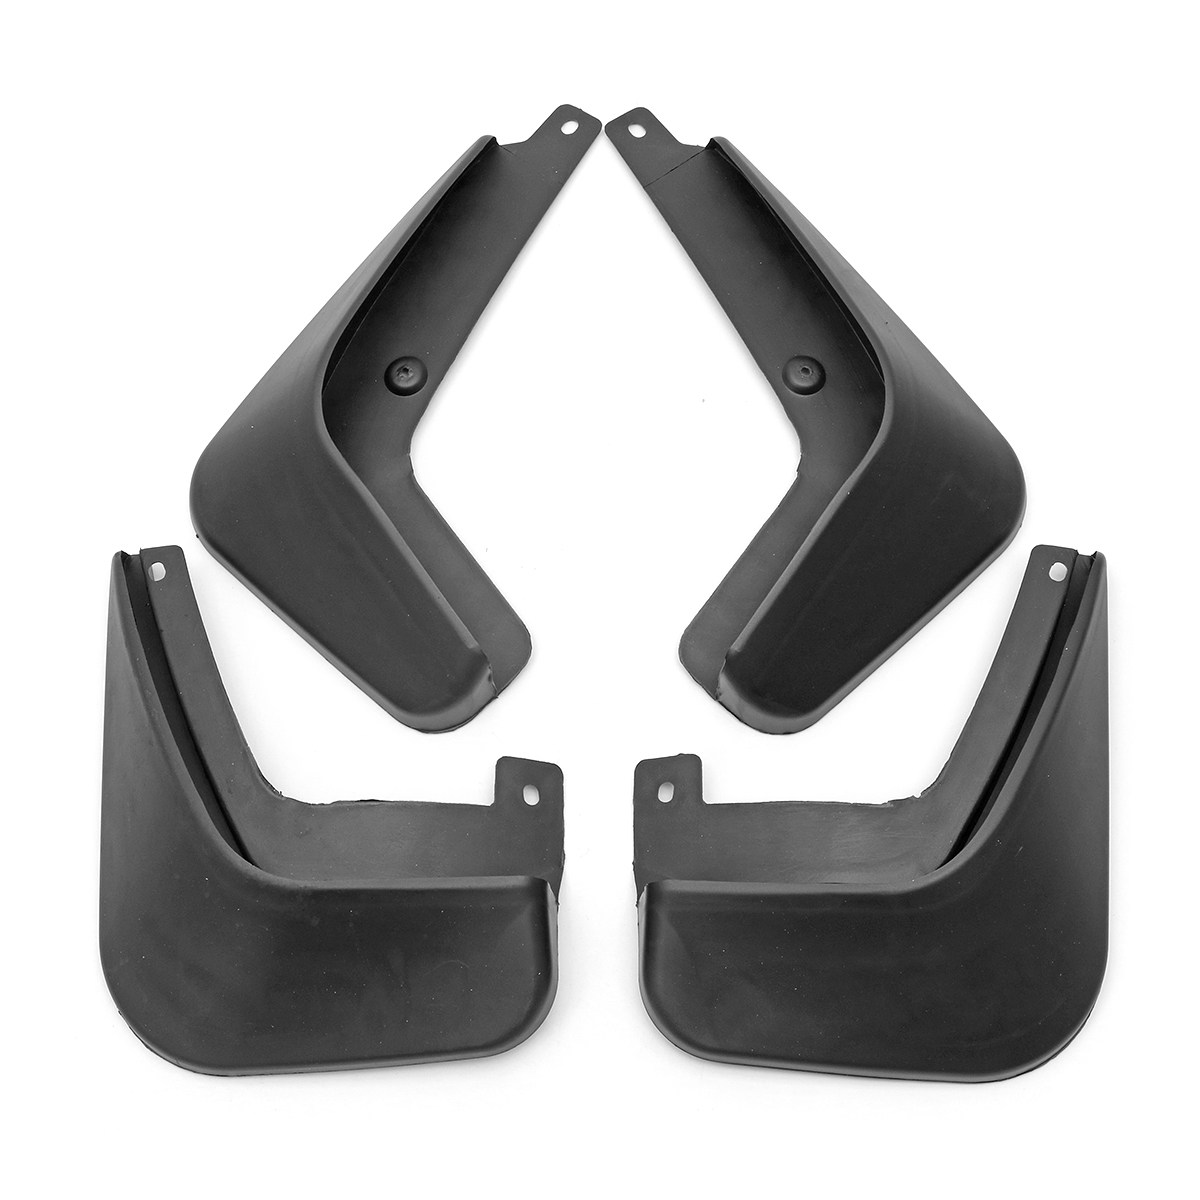 4pcs Car front and rear Mudguard -Fender Splash Flaps Mud Flaps For Geely Emgrand EC7